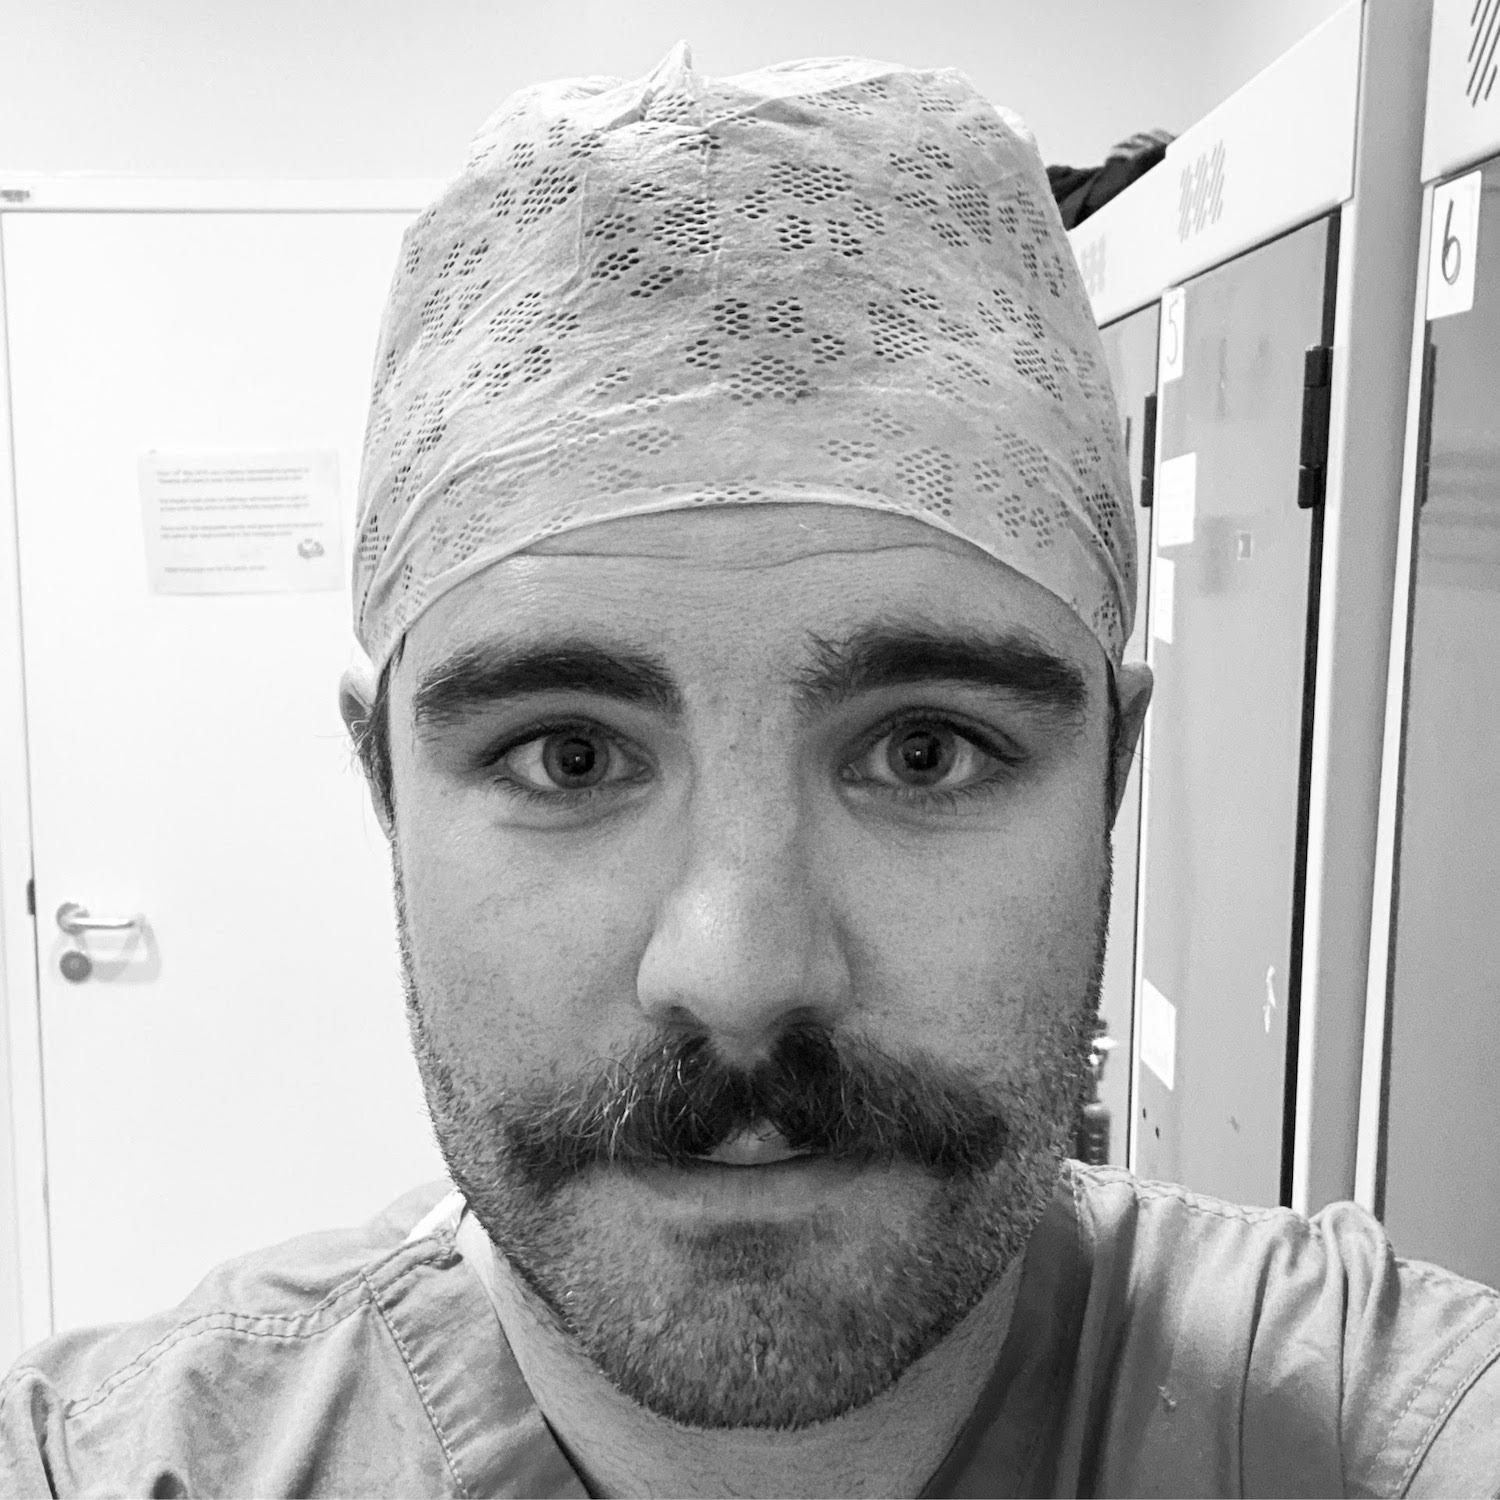 Surgeons get sick too: My TEDxNHS story